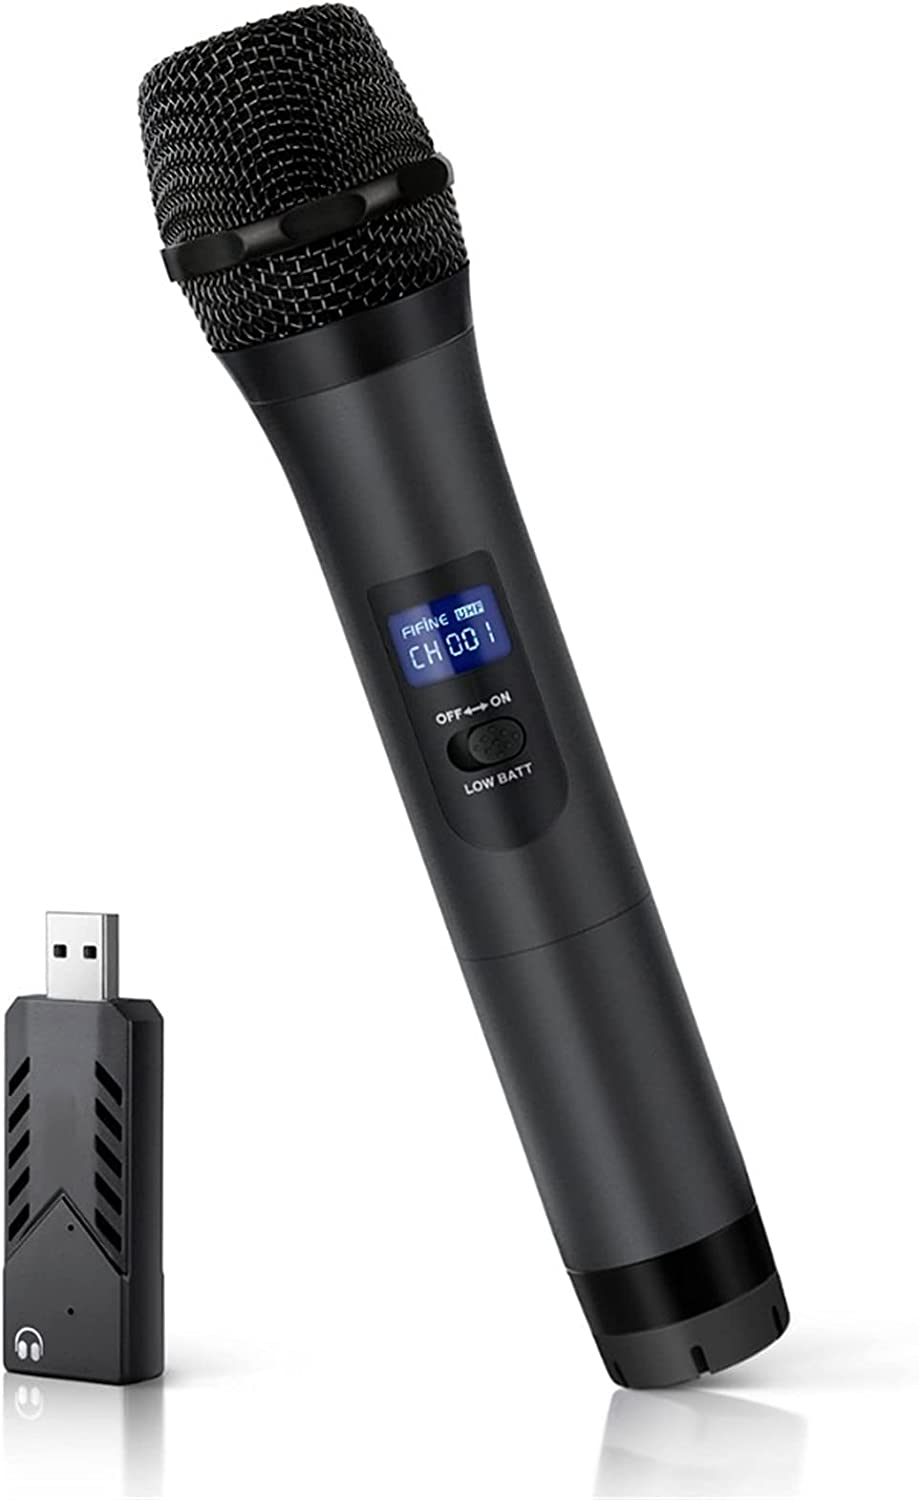 zlw-shop Professional UHF Handheld Dynamic Receiver with Mic ! Super beauty product restock quality top! Max 68% OFF USB